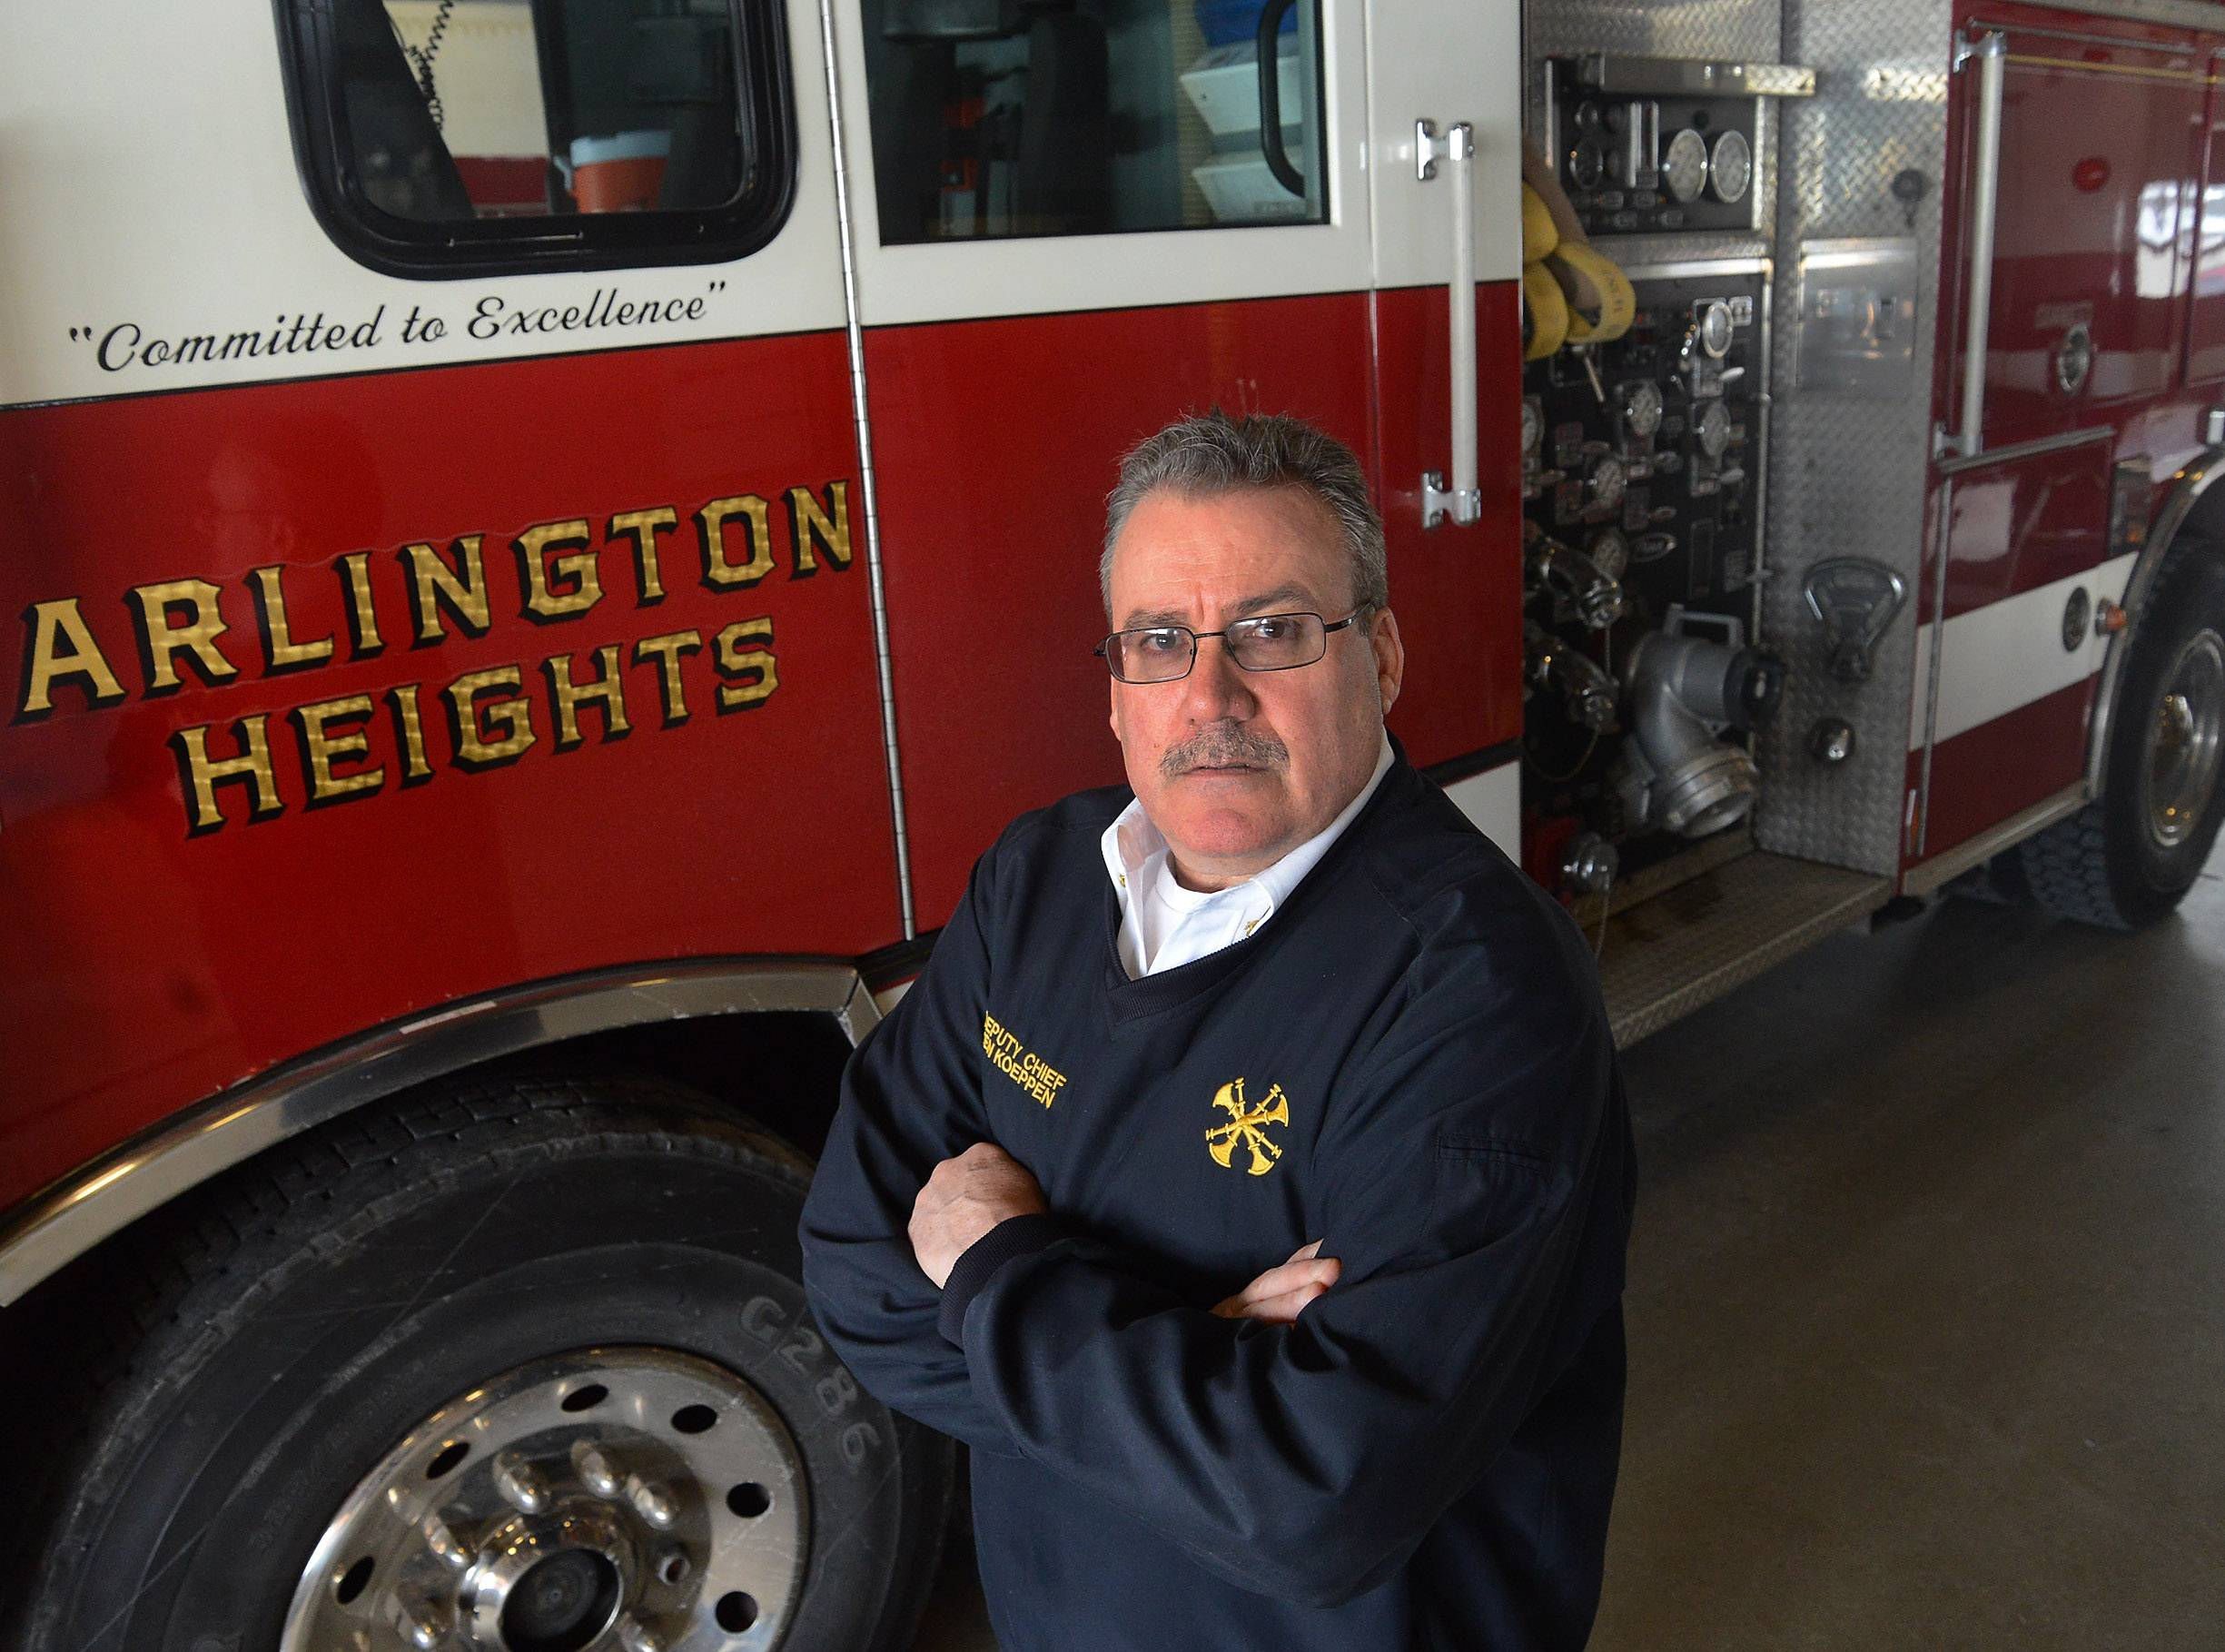 Ken Koeppen is the fifth fire chief in Arlington Heights history.